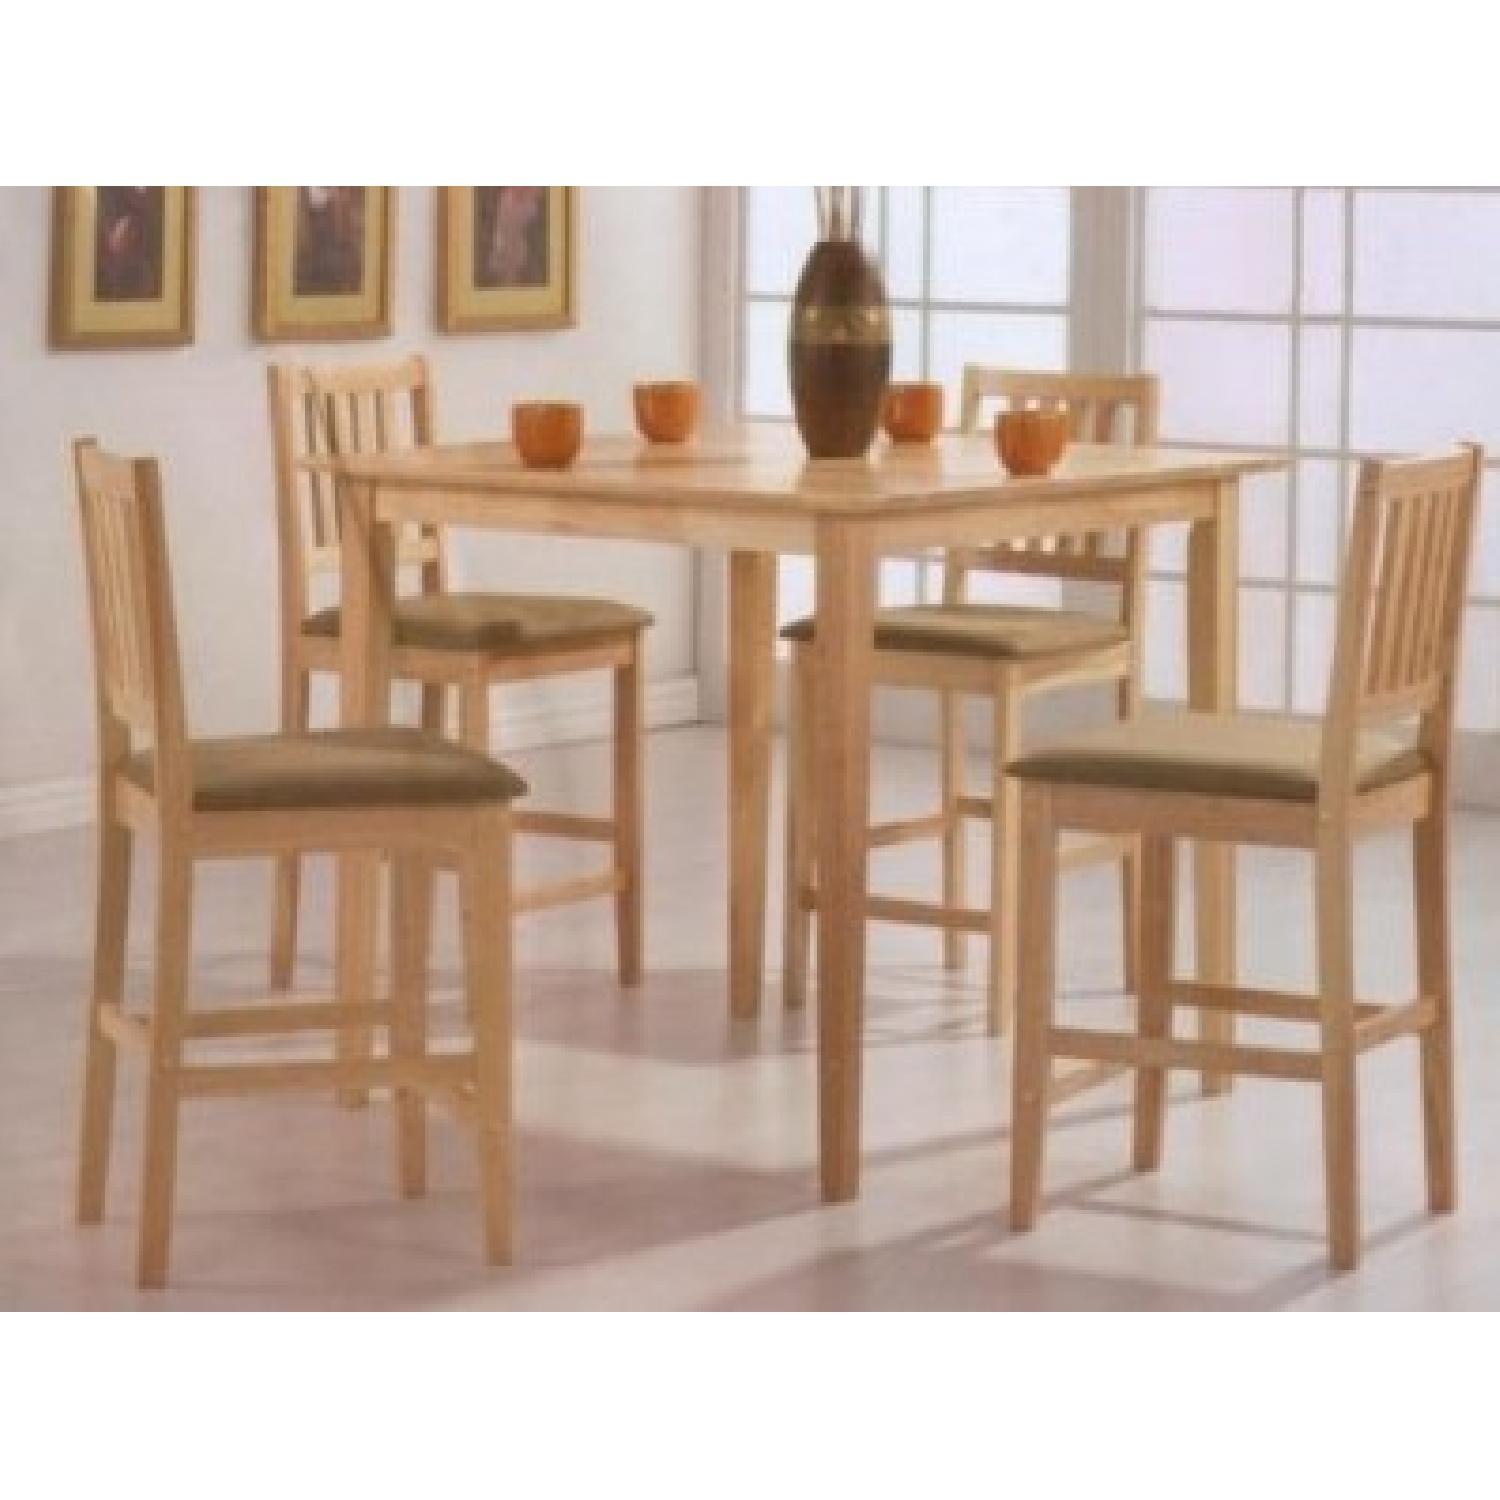 5 Piece Counter Height Solid Wood Dining Set In Natural Finish - image-1